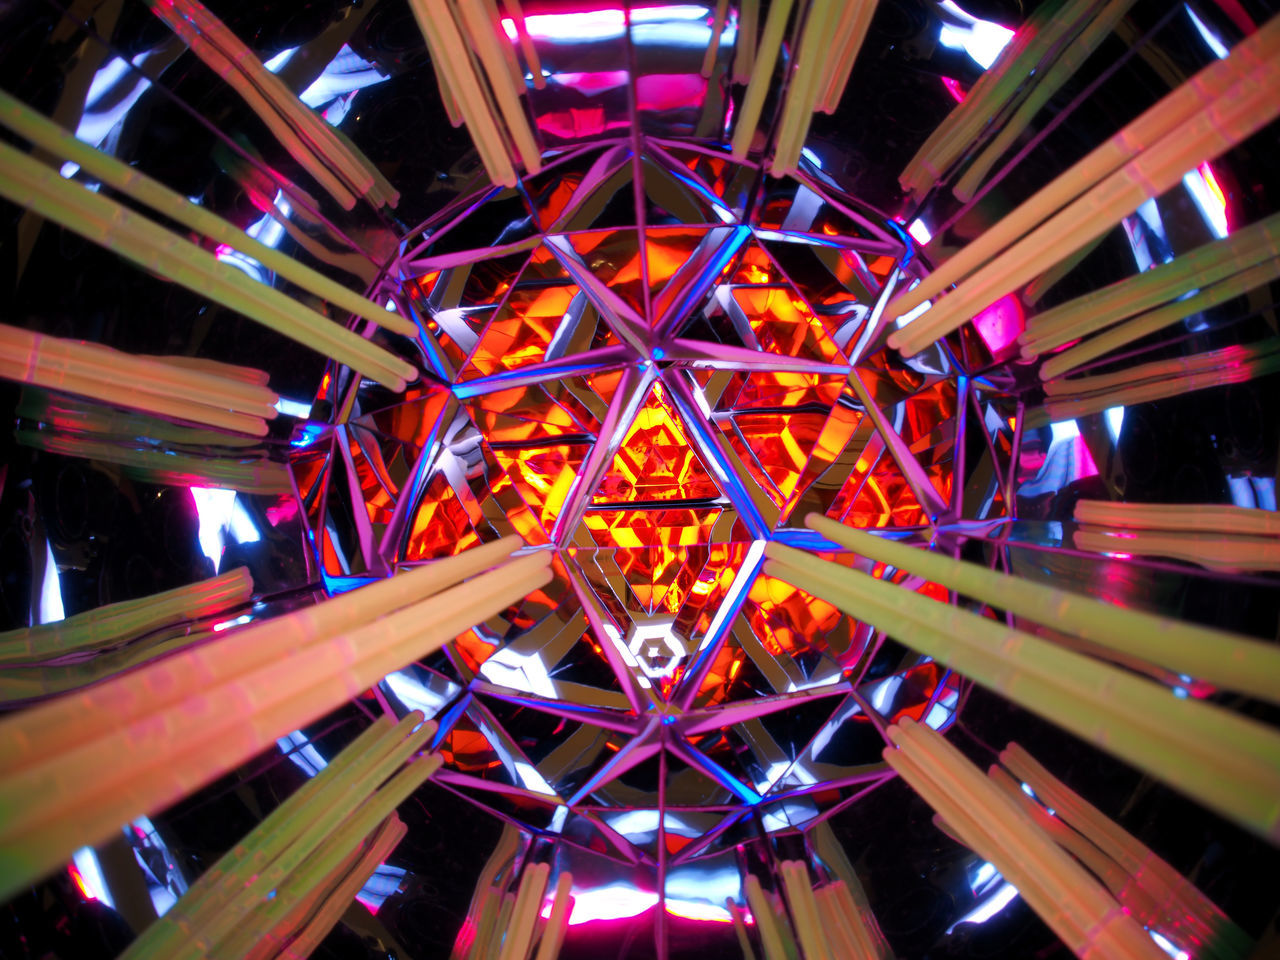 illuminated, amusement park, multi colored, amusement park ride, night, architecture, pattern, built structure, shape, arts culture and entertainment, no people, glowing, lighting equipment, low angle view, enjoyment, design, outdoors, metal, leisure activity, ceiling